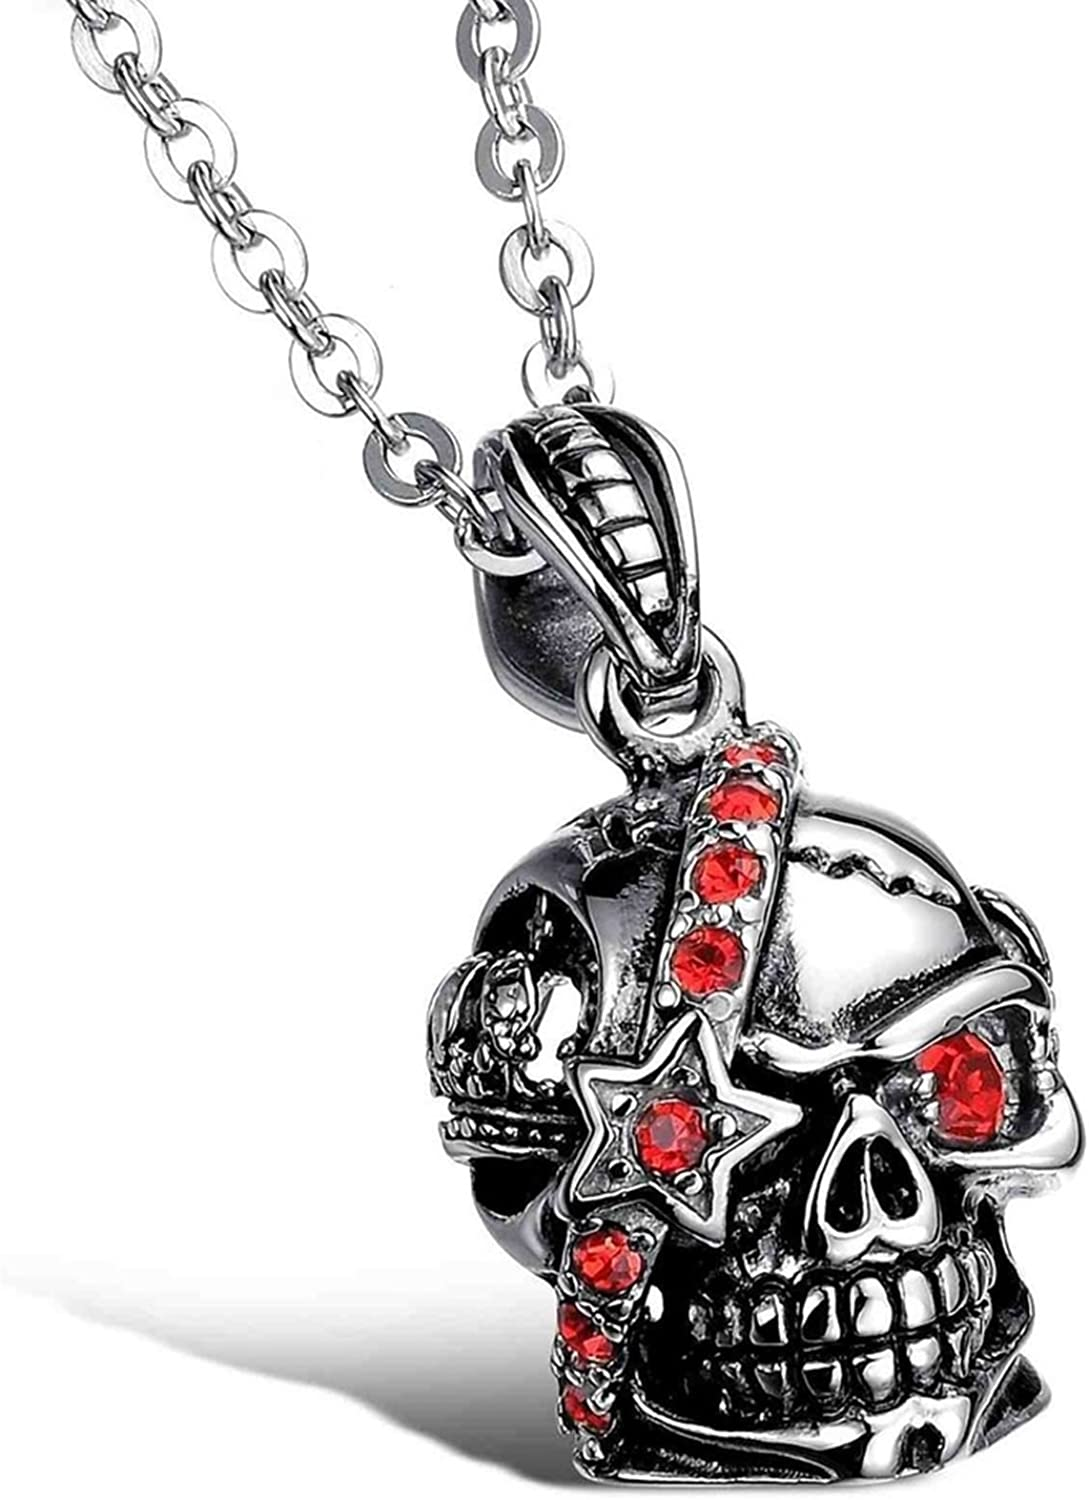 Aokarry Jewelry Men Stainless Steel Necklace Pendant Necklace Skull Silver Necklace for Men 30 MM